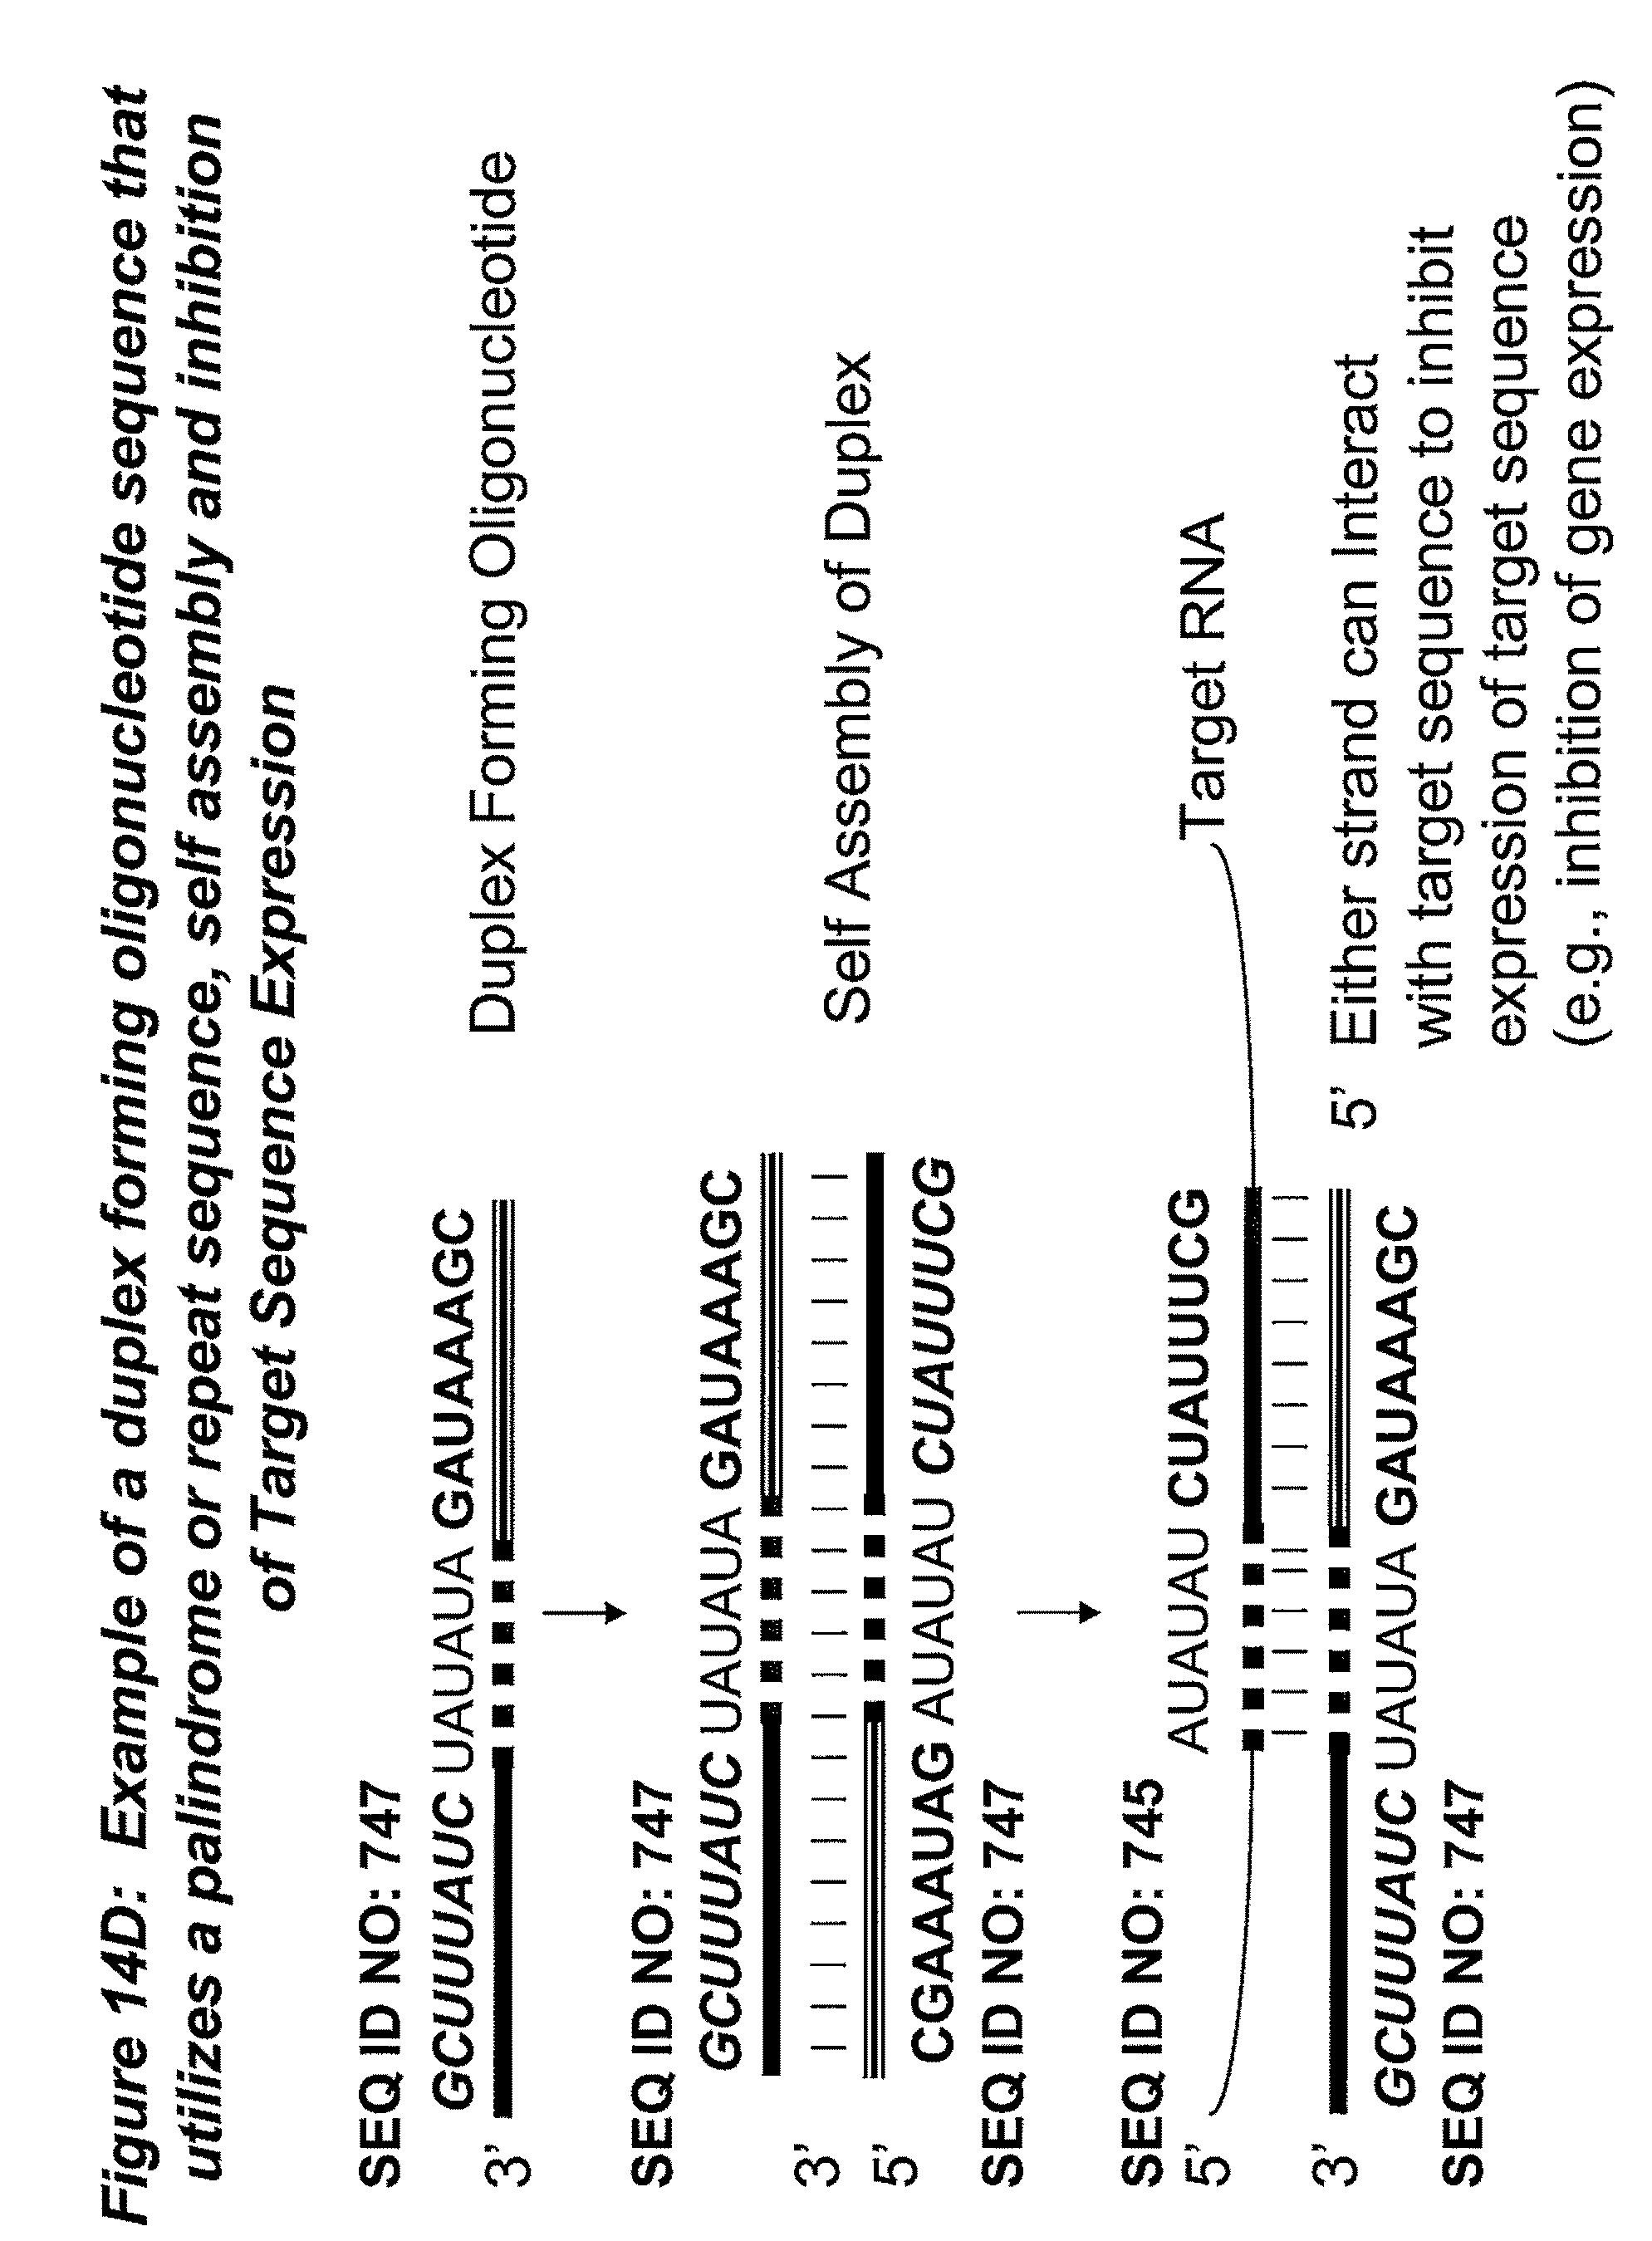 expression and purification of human platelet derived Expression and purification of non-prolyl cis-peptide bond mutants in human plasma platelet activating factor acetylhydrolase author: woerner, kaitlyn.